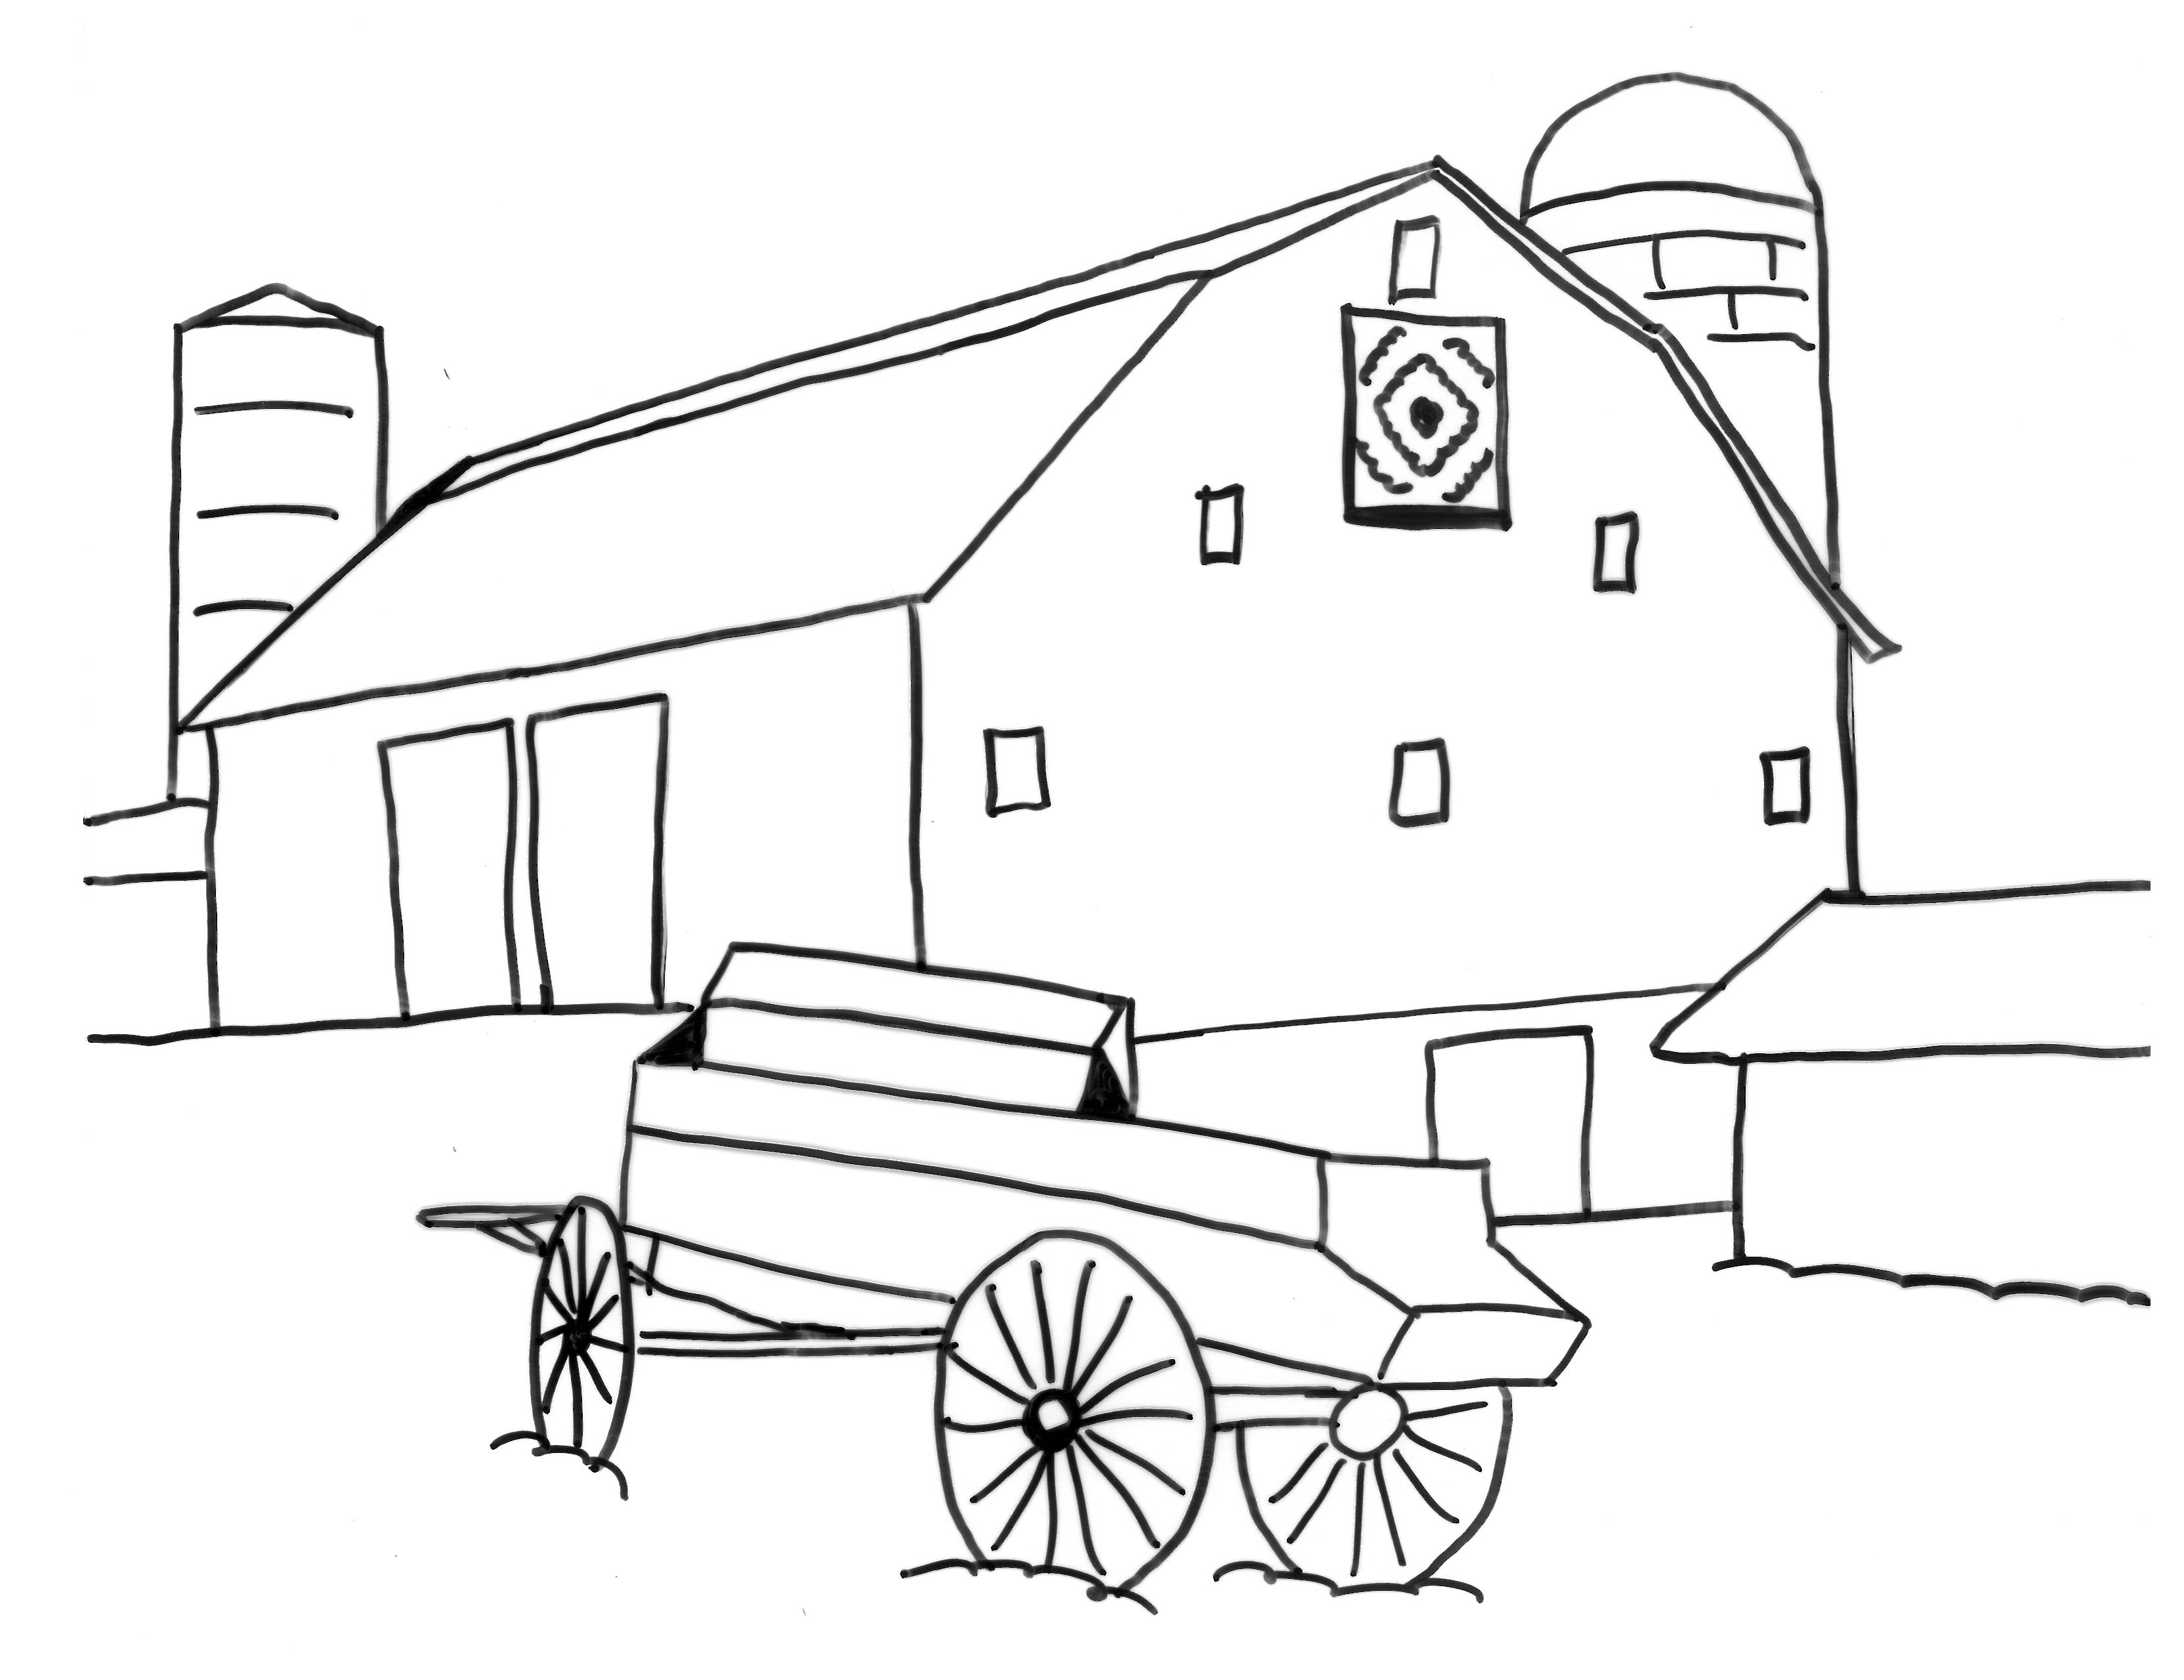 Coloring Pages | Barn Quilts in Garrett County, Maryland